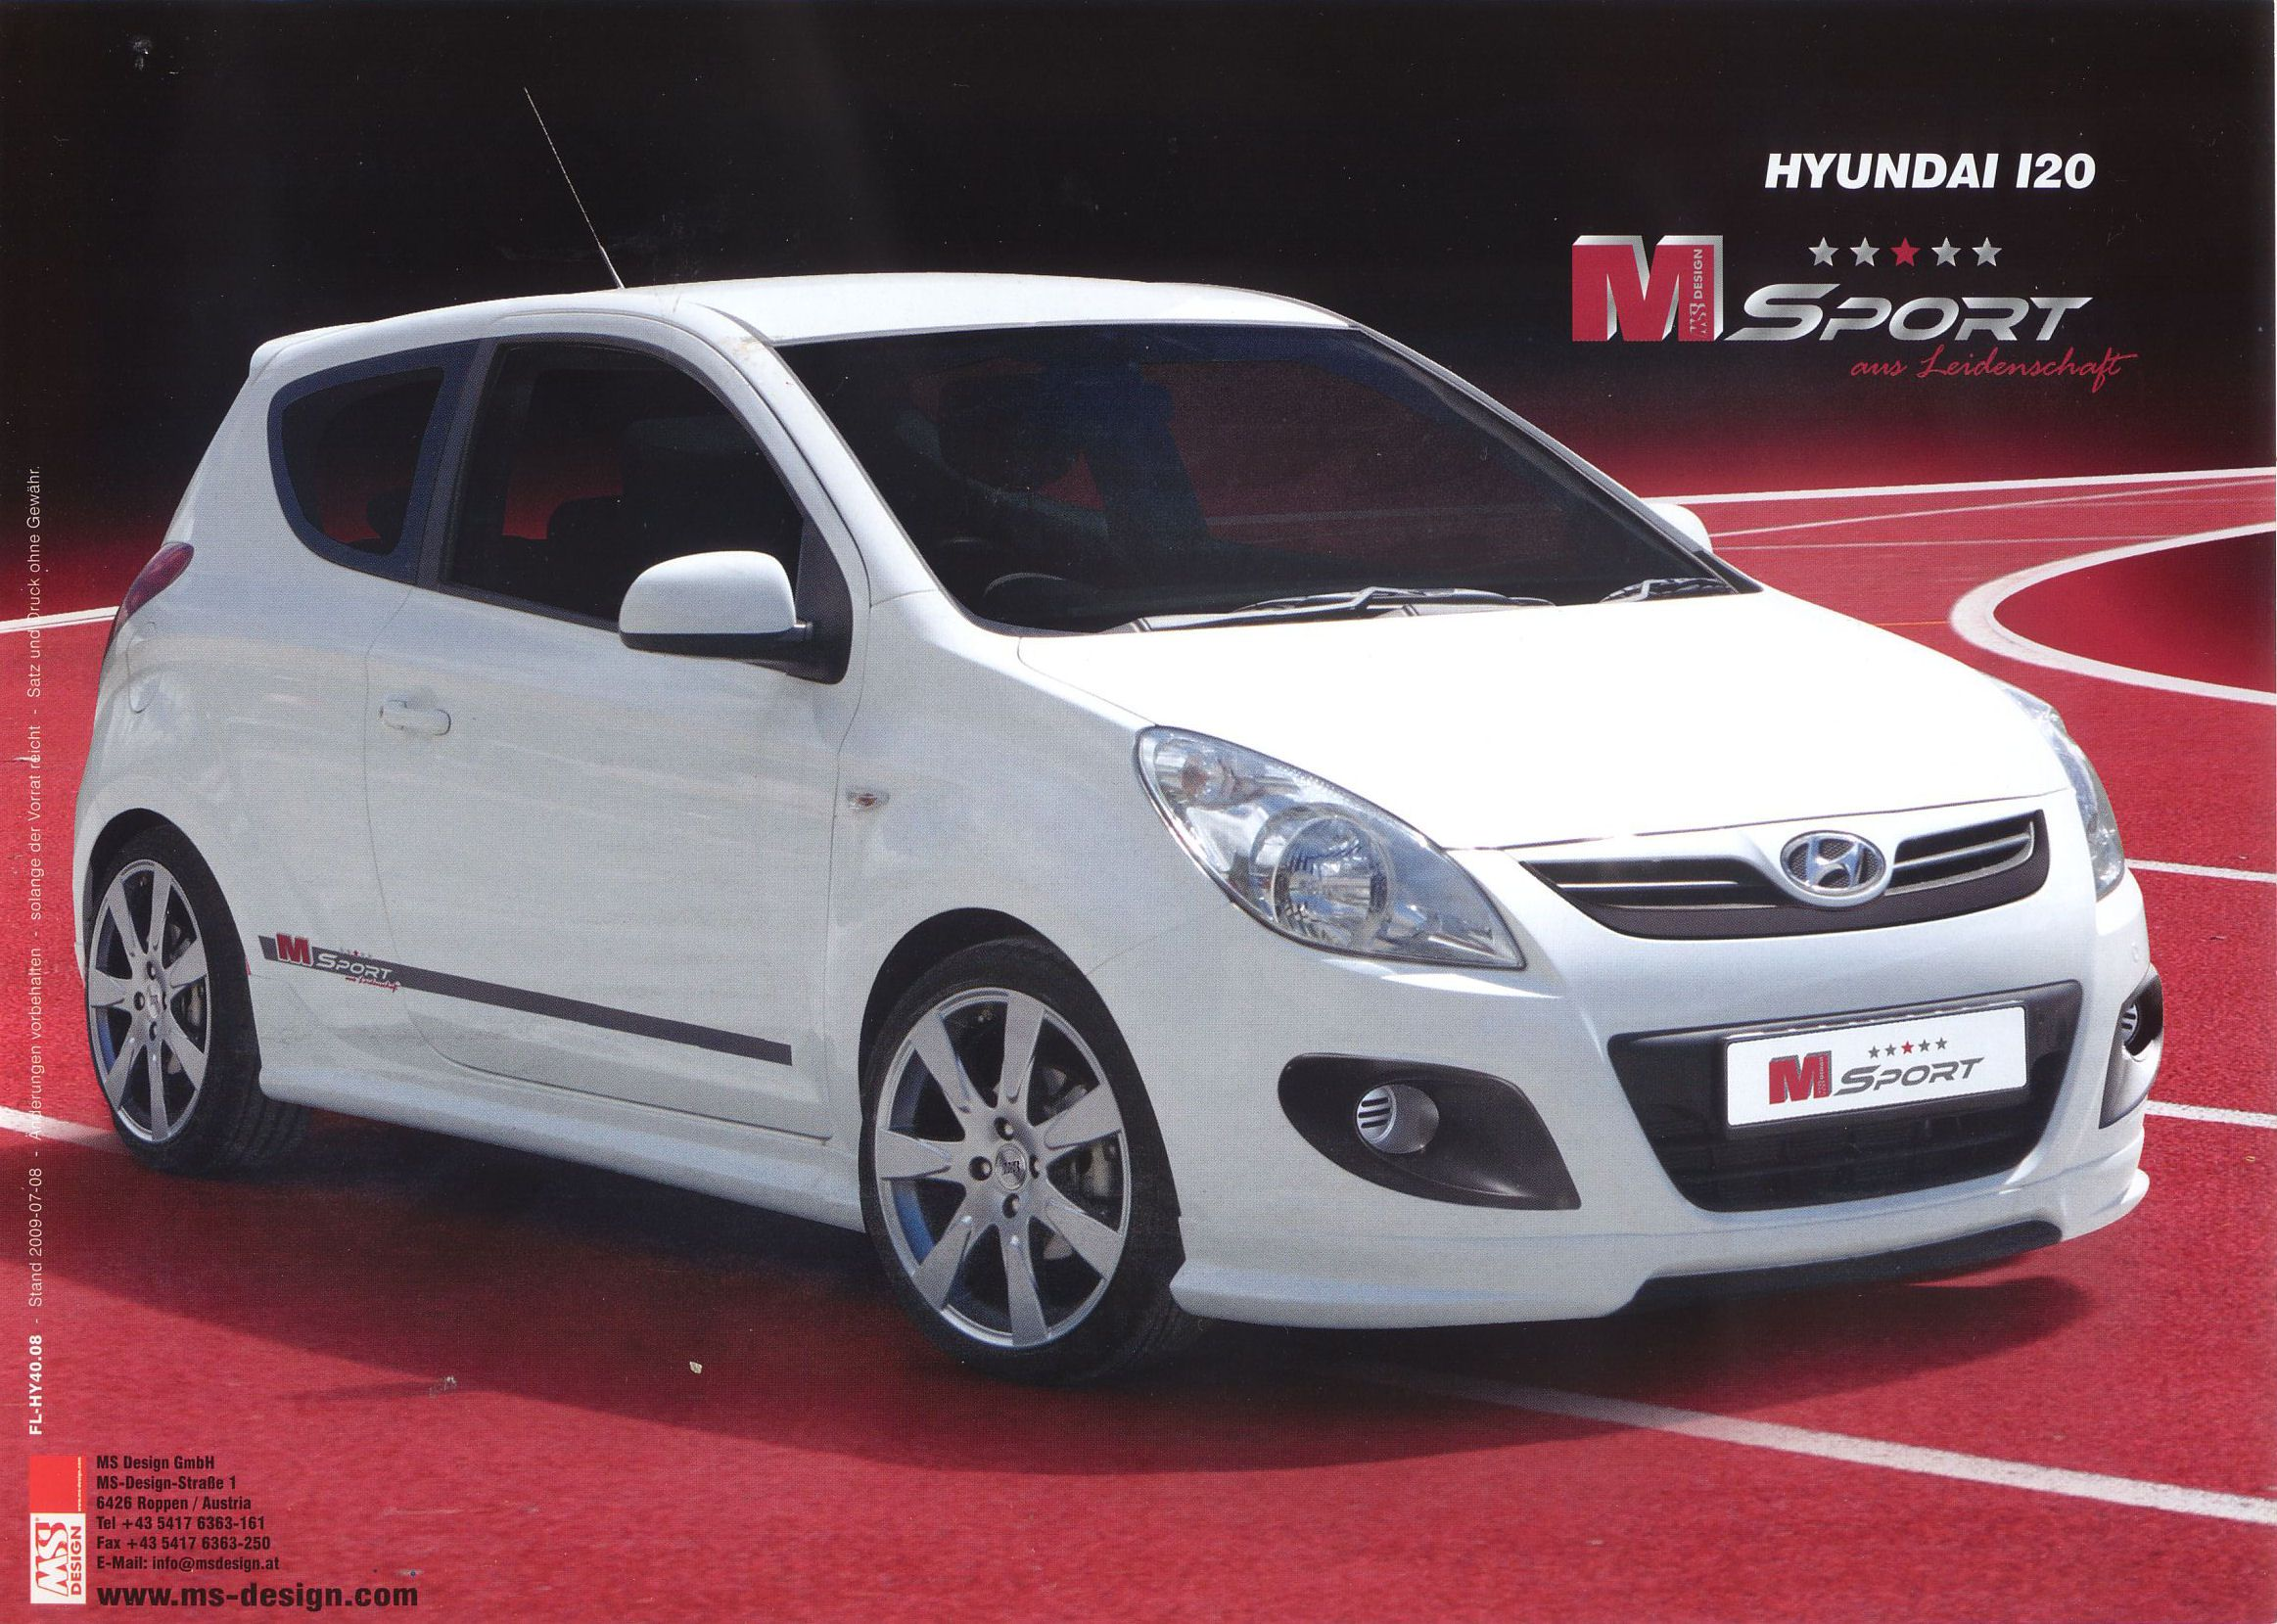 2009 hyundai i20 m sport brochure. Black Bedroom Furniture Sets. Home Design Ideas